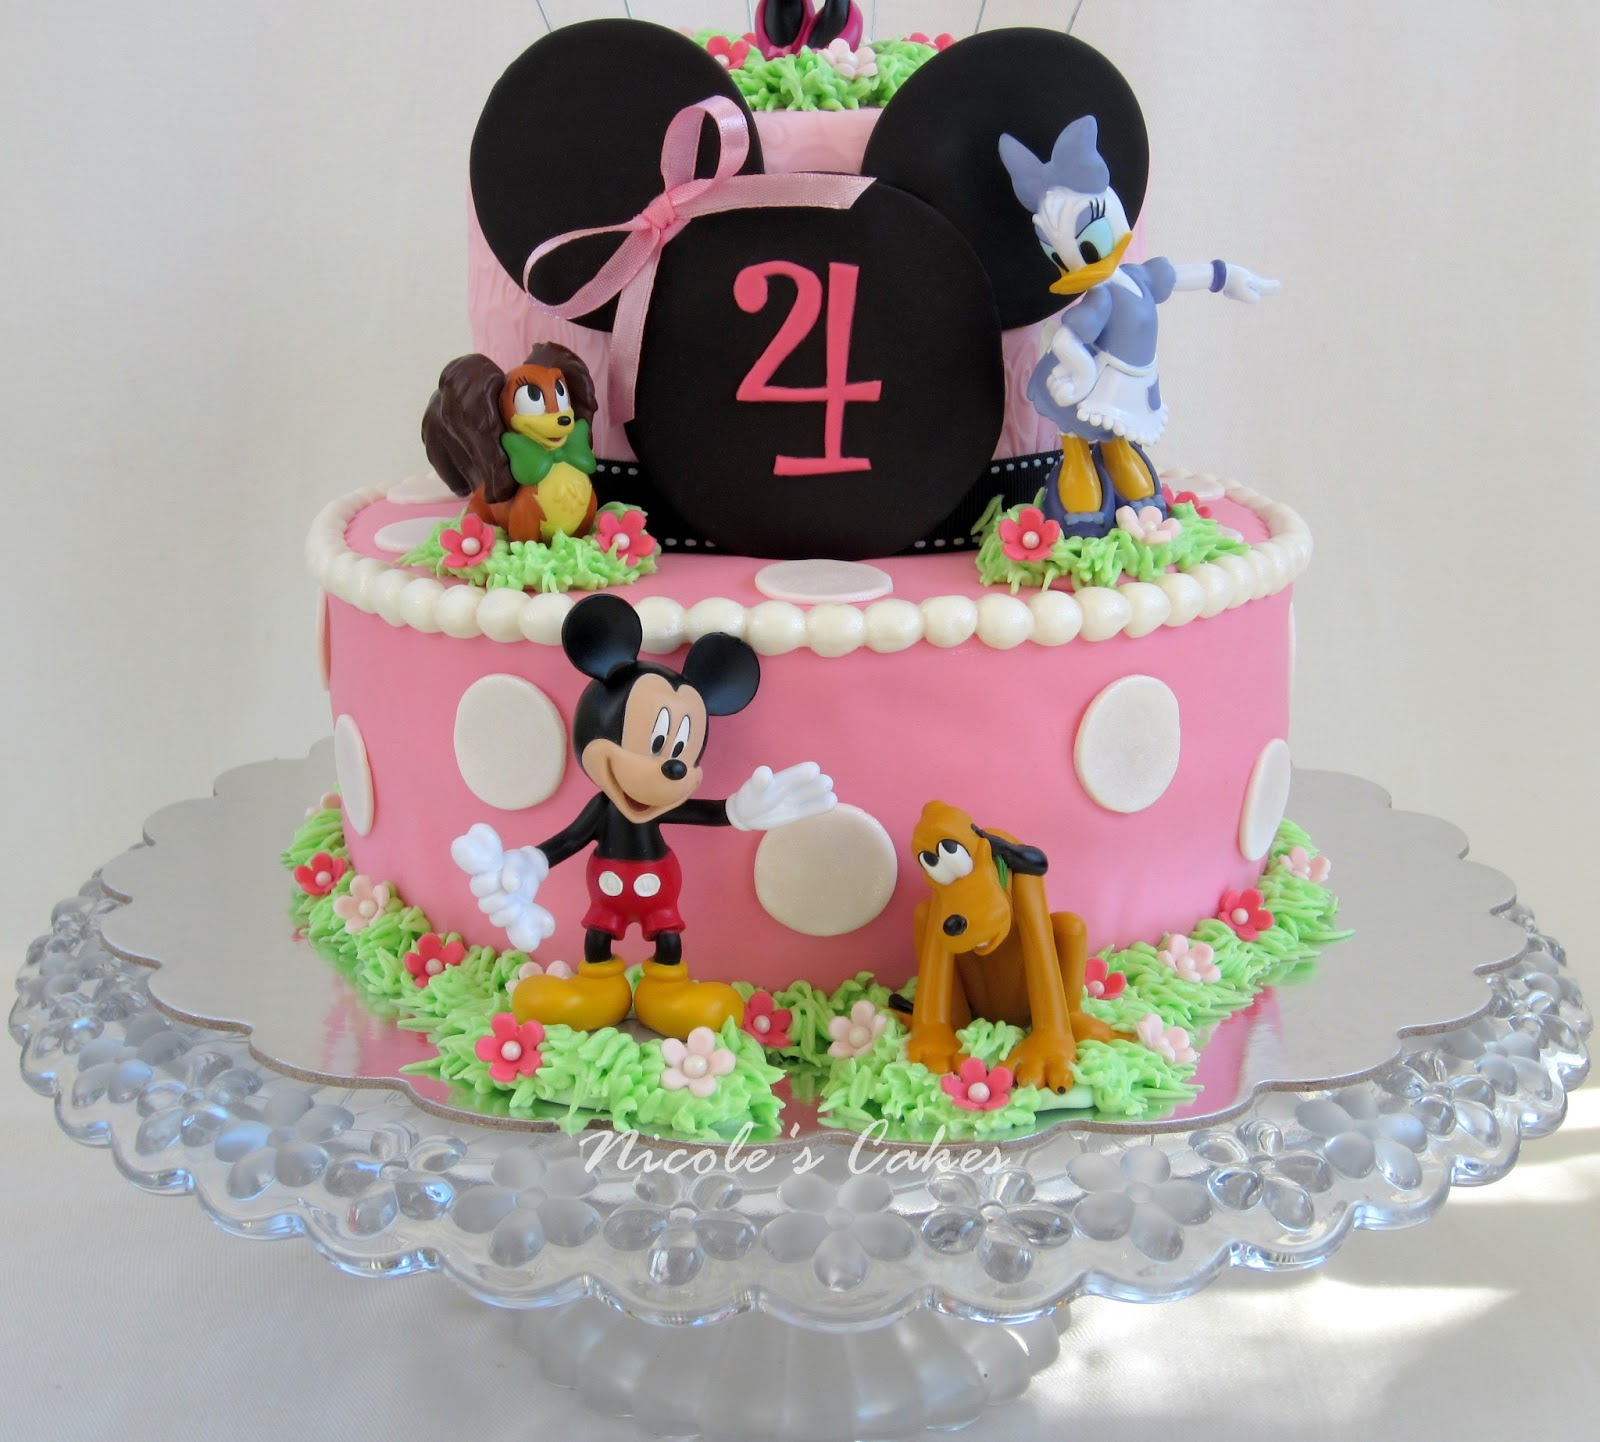 Confections, Cakes & Creations!: Minnie & Friends Cake!